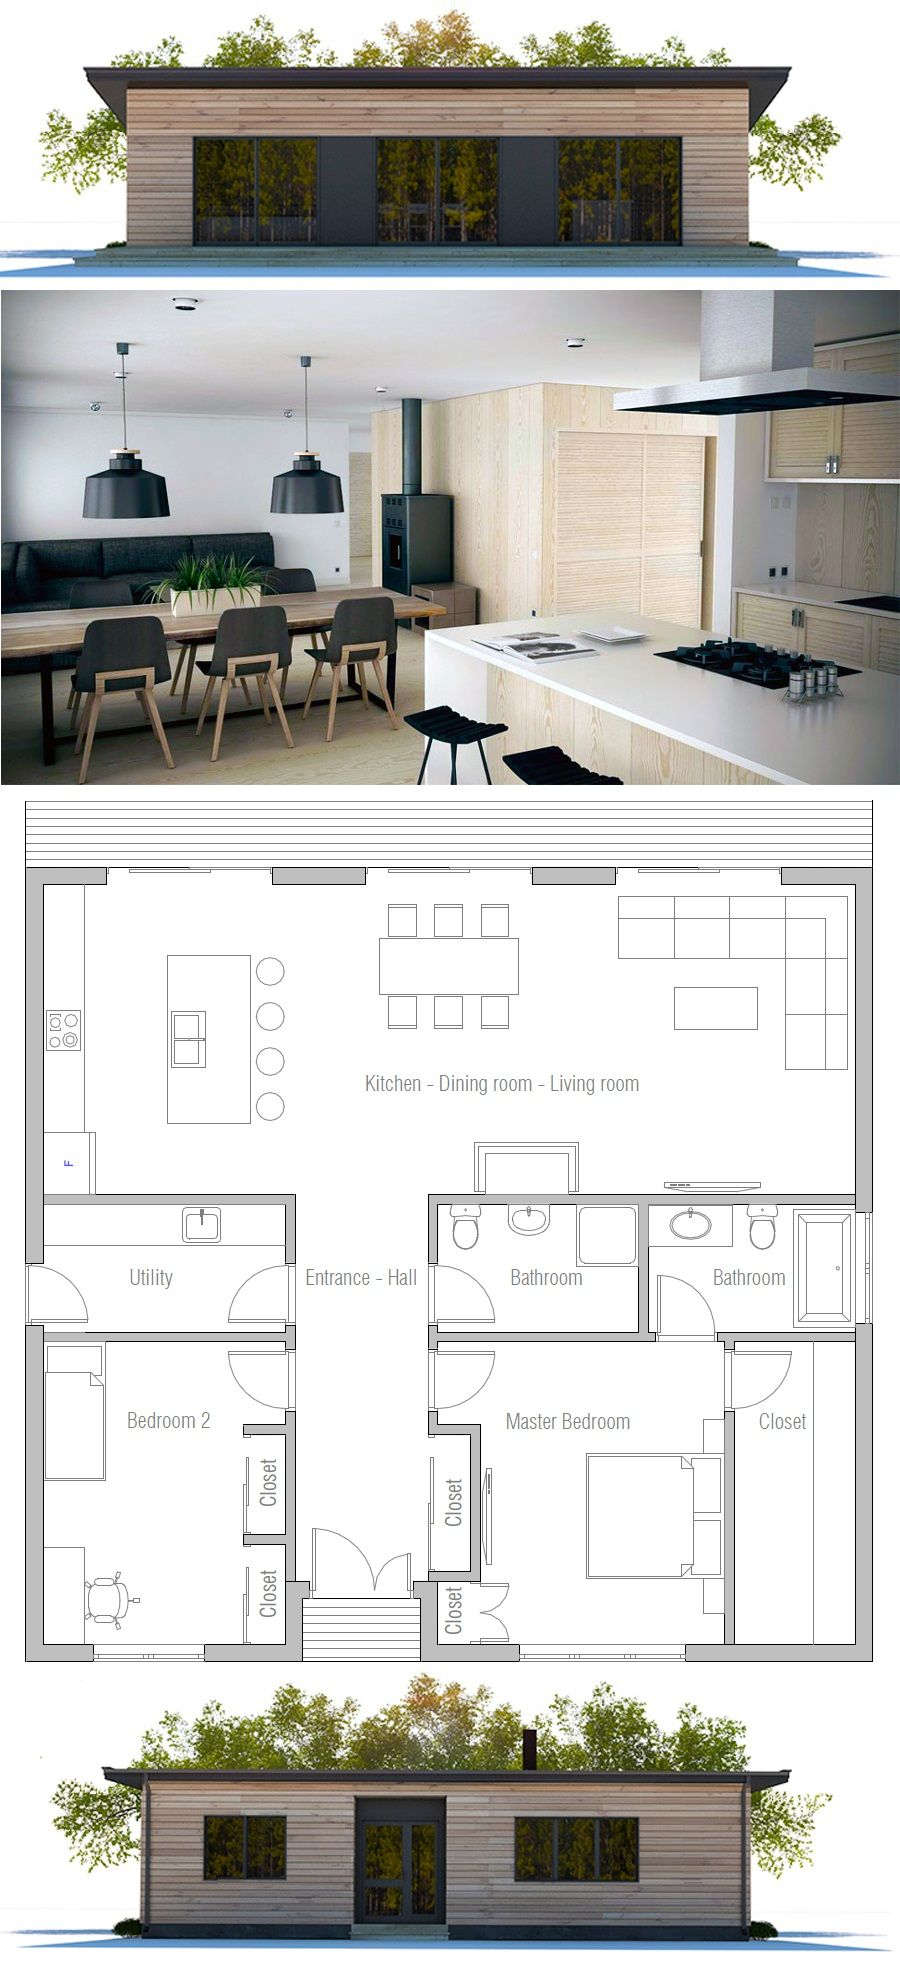 Two bedroom house plan | Container house plans, Building a ...